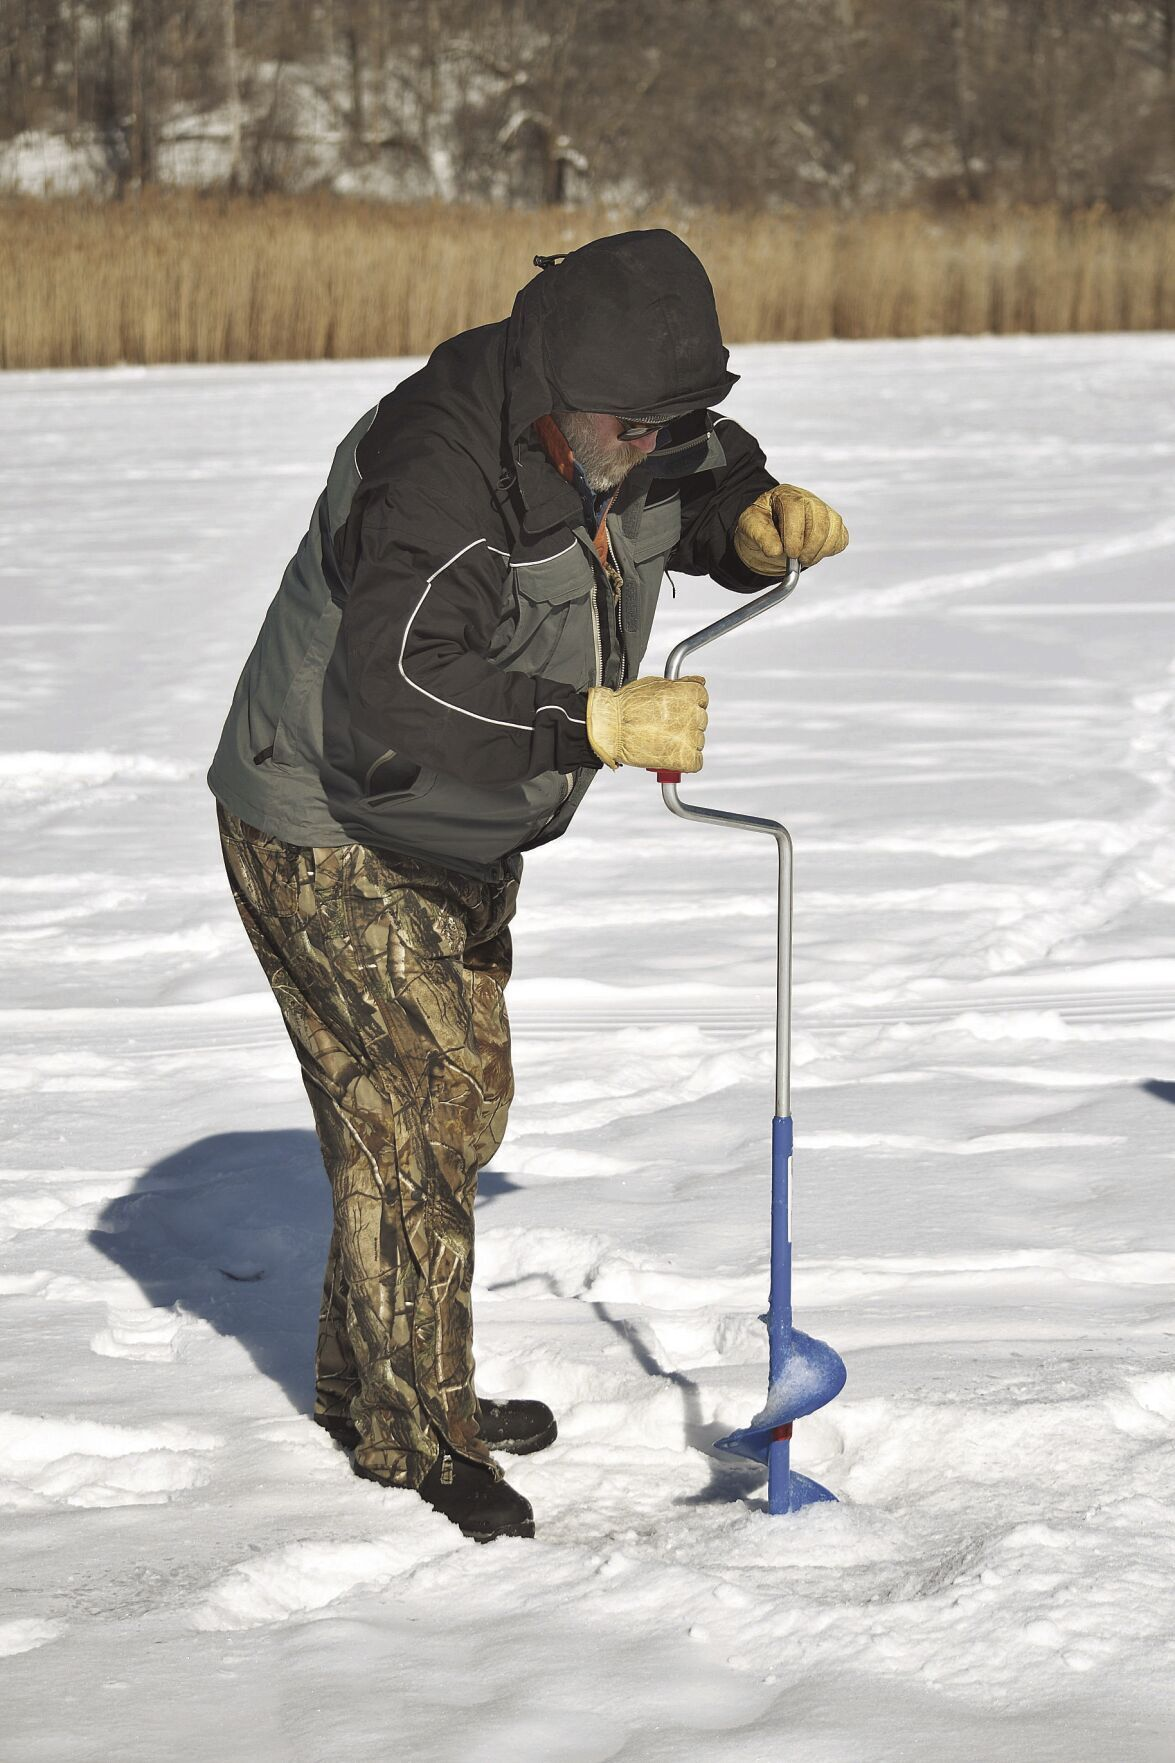 Free Ice Fishing day